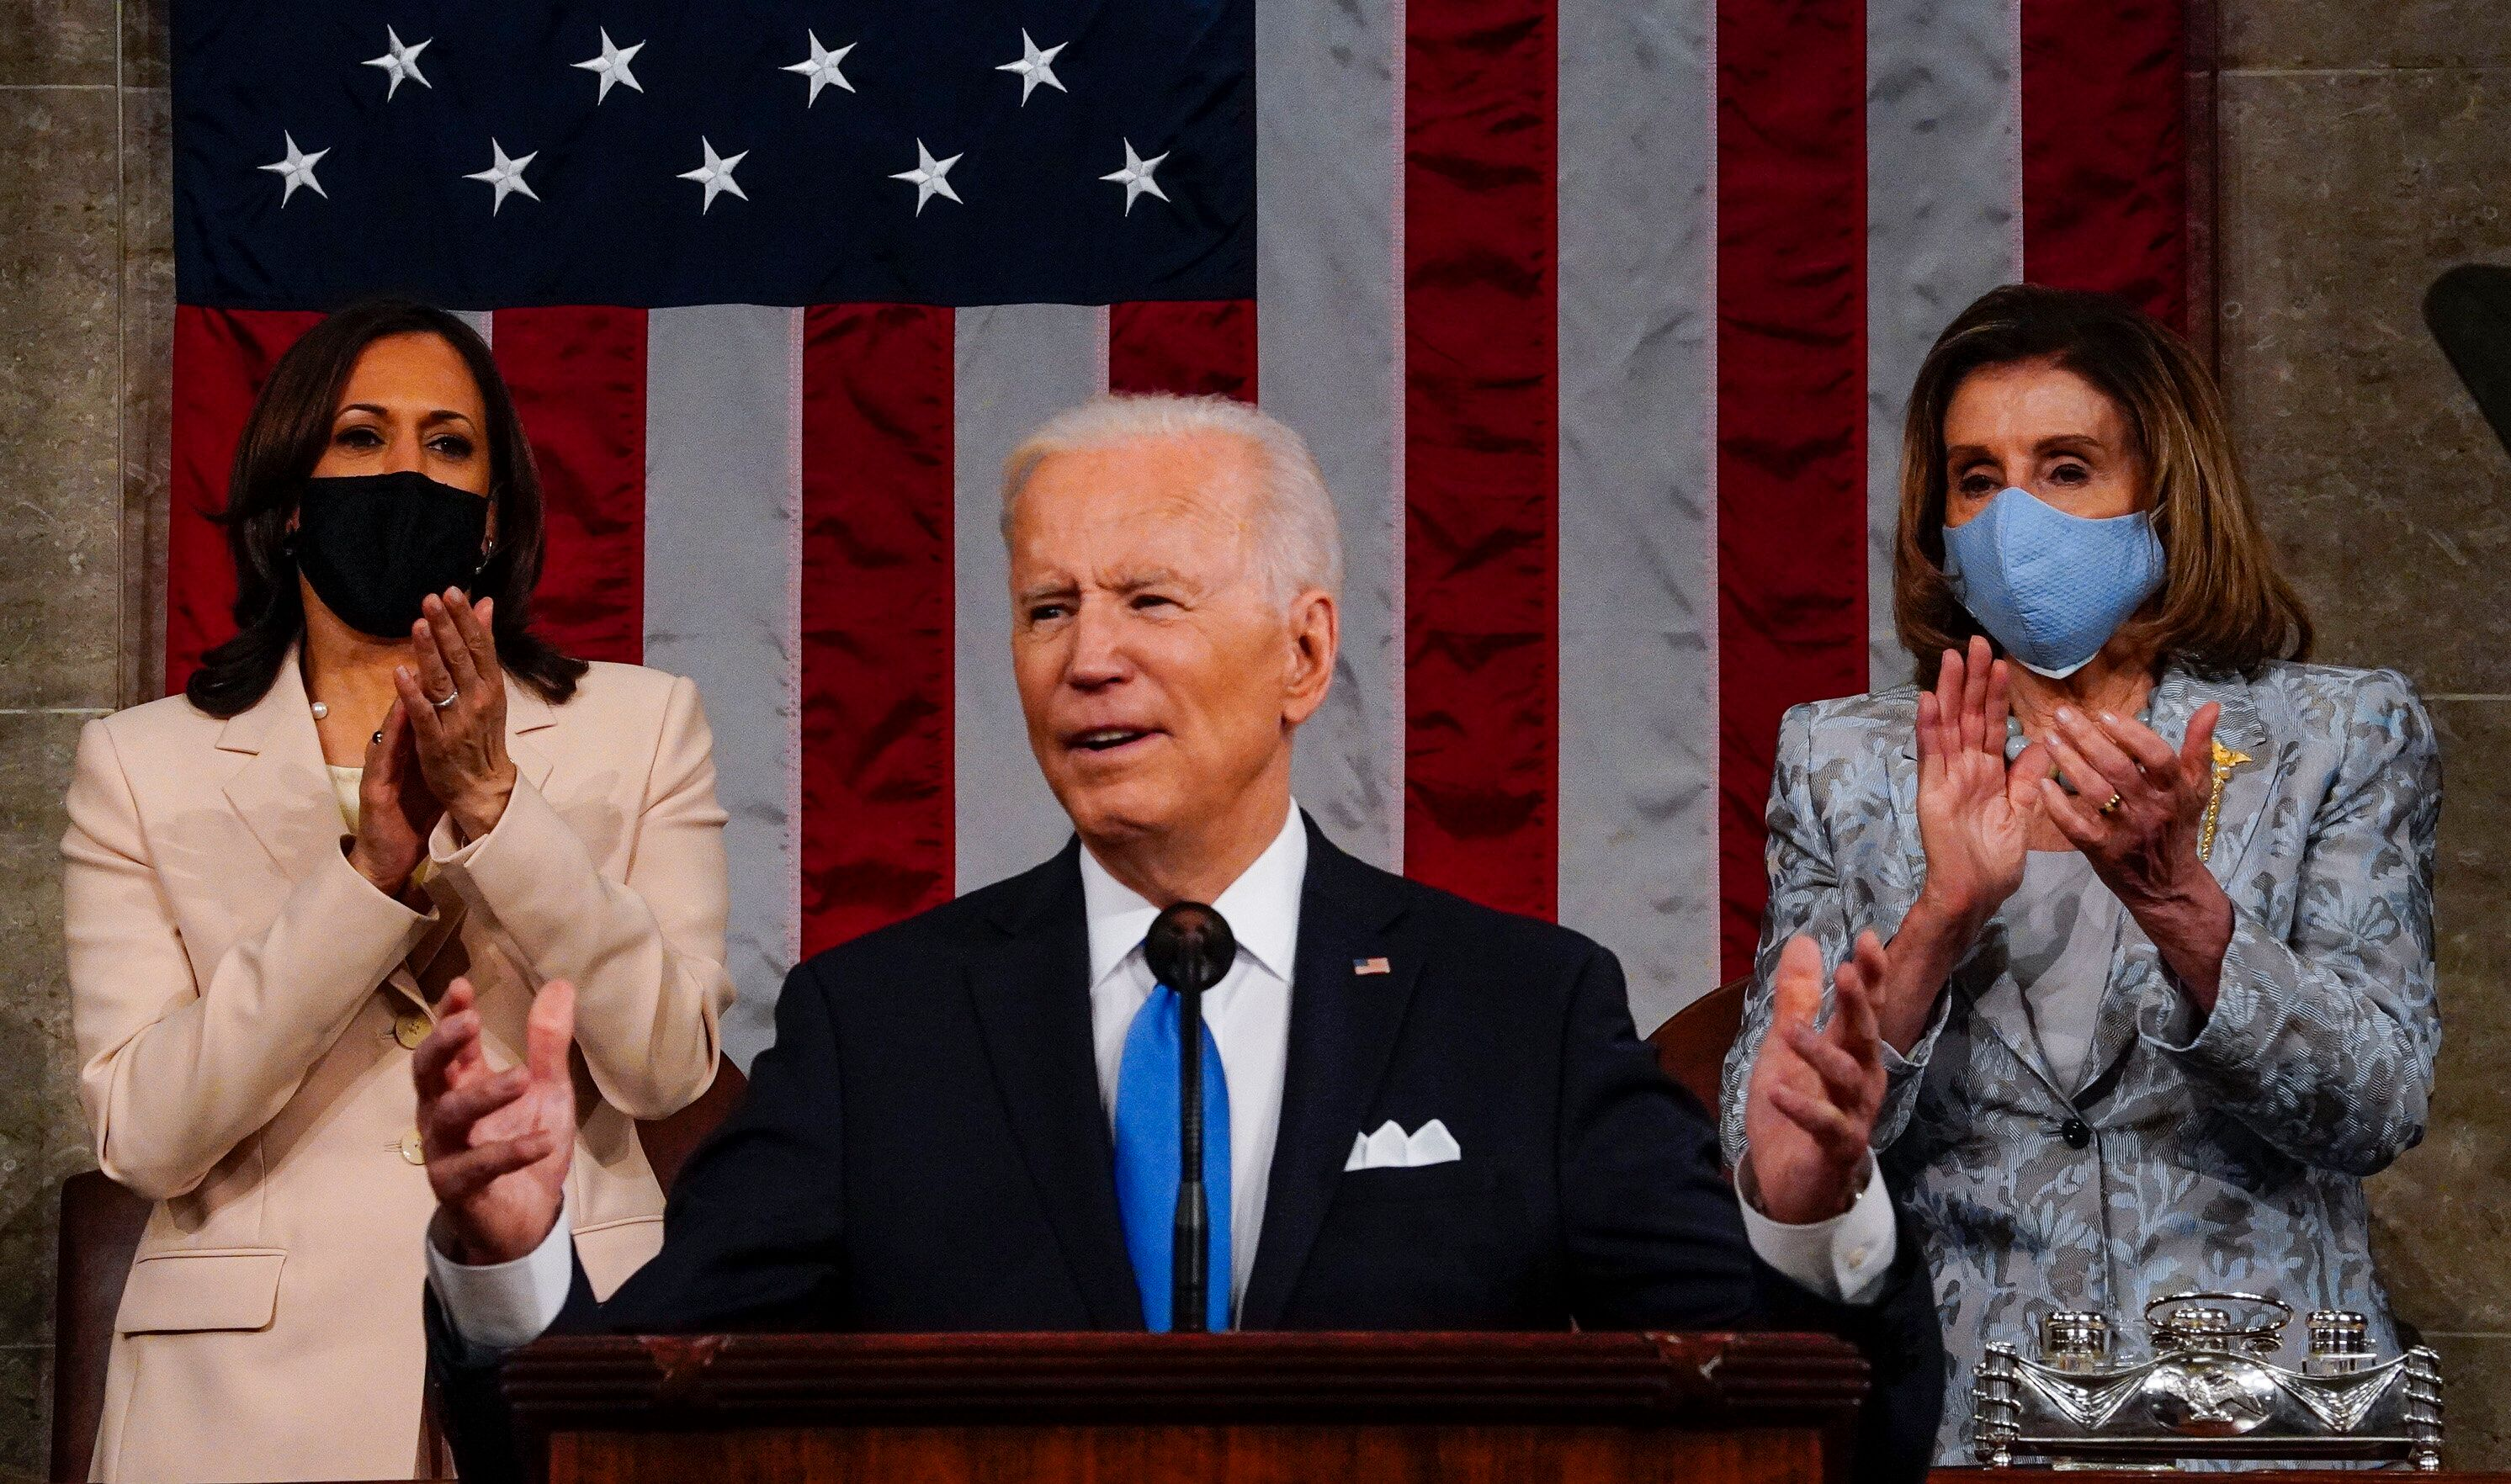 """President Joe Biden told a joint session of Congress that he intends to enact his agenda. """"I just want to be clear: From my p"""